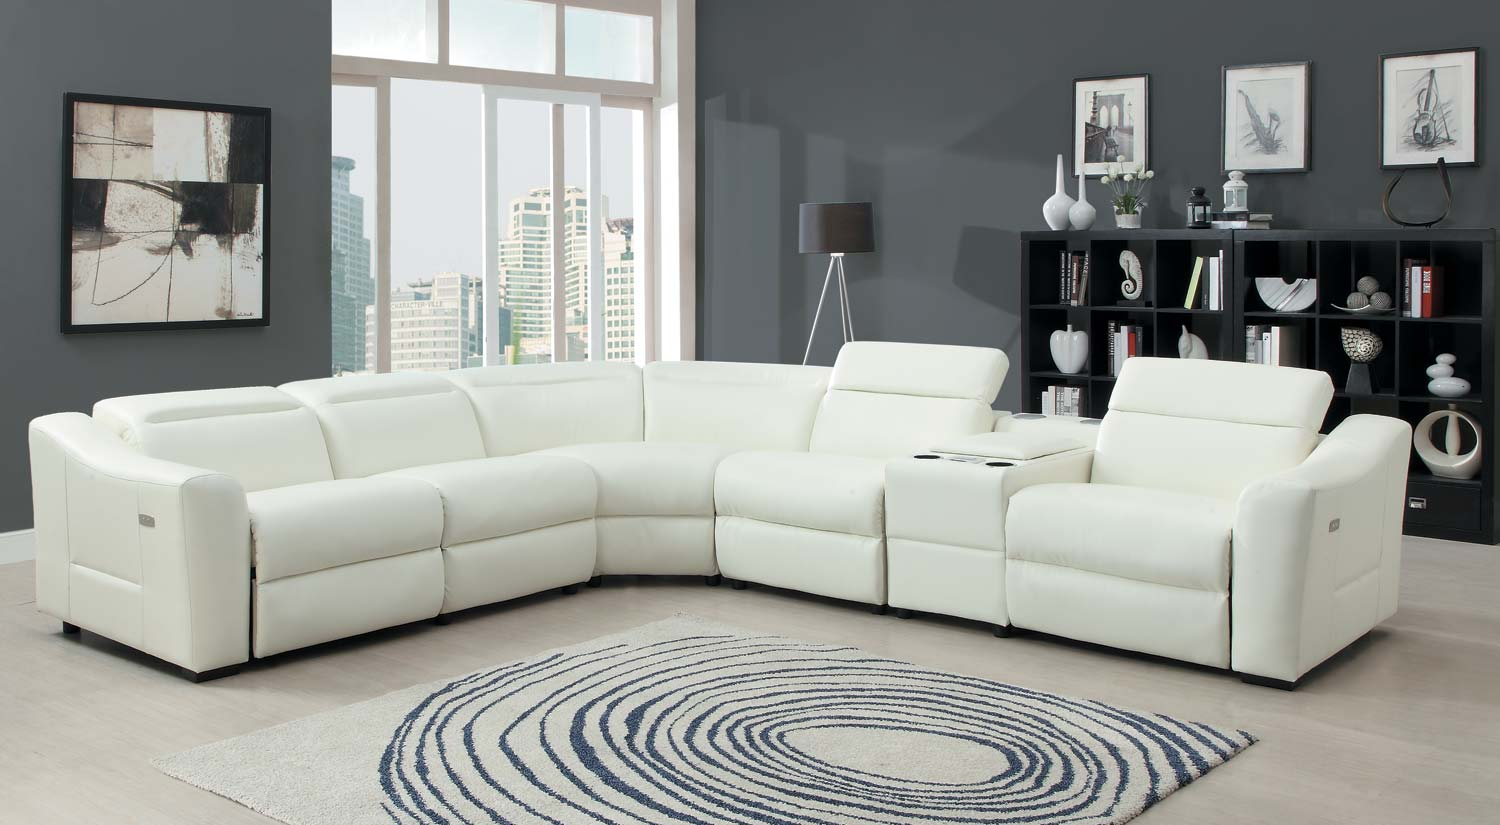 Homelegance instrumental sectional sofa set white bonded leather match u9623 sect Italienische sofa